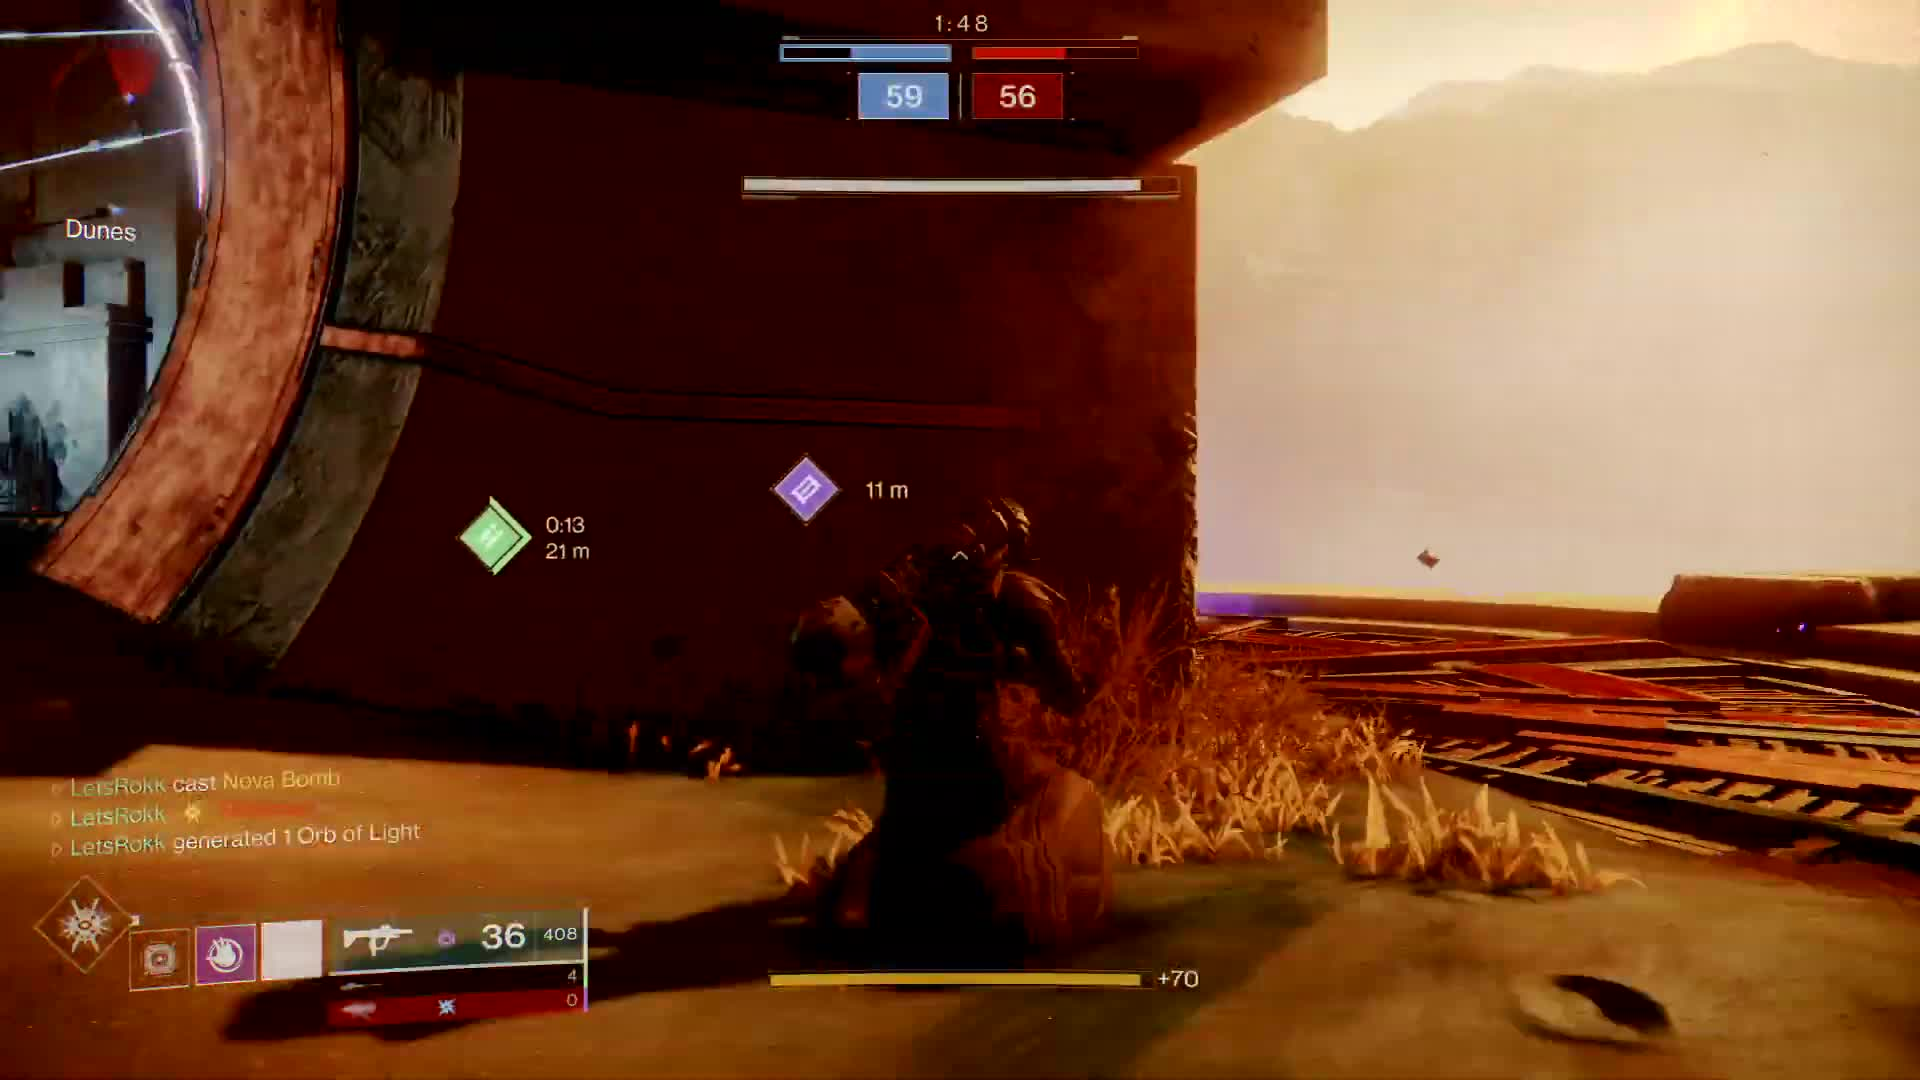 destiny 2, gaming, letsrokk, playstation 4, ps4share, sony interactive entertainment, Destiny 2 -The Recluse being The Recluse GIFs